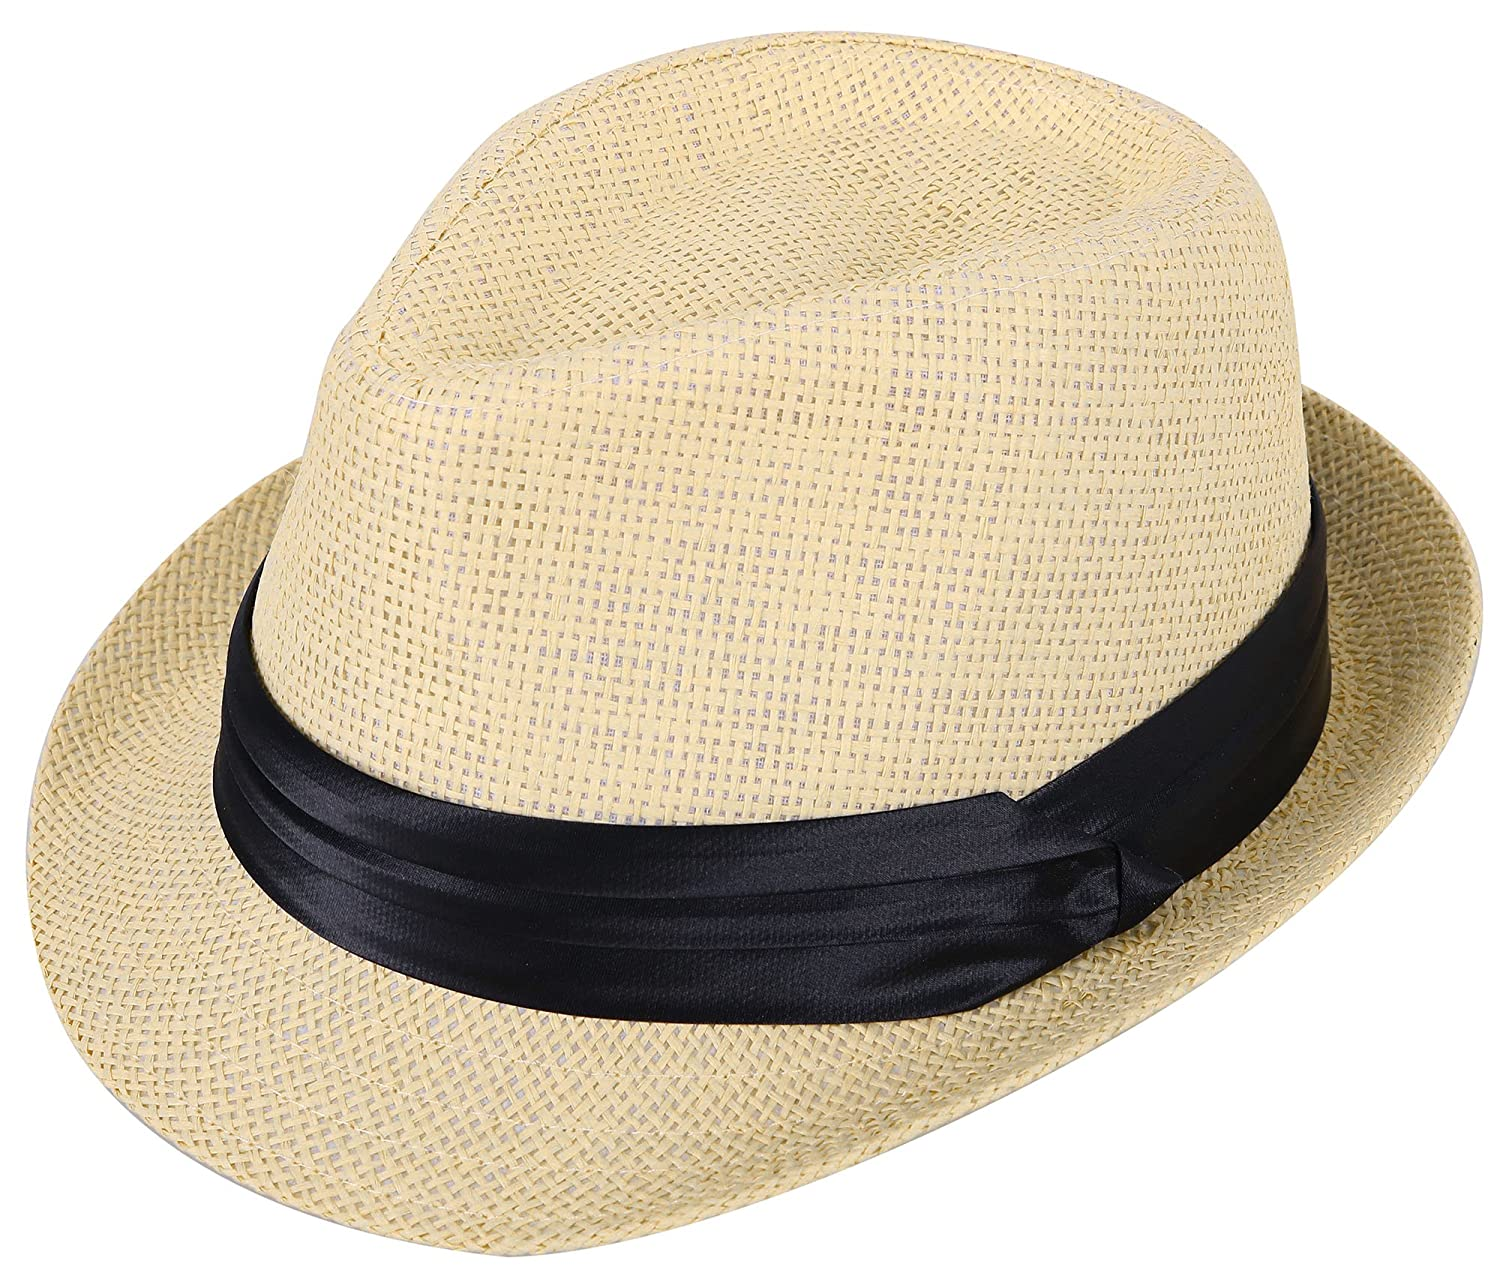 98e2658f11f15 Beautifully woven straw pattern. Classic teardrop shaped pinched crown.  Satiny smooth ribbon hat band d¨¦cor accent. Inner sweat absorbent band  helps wick ...